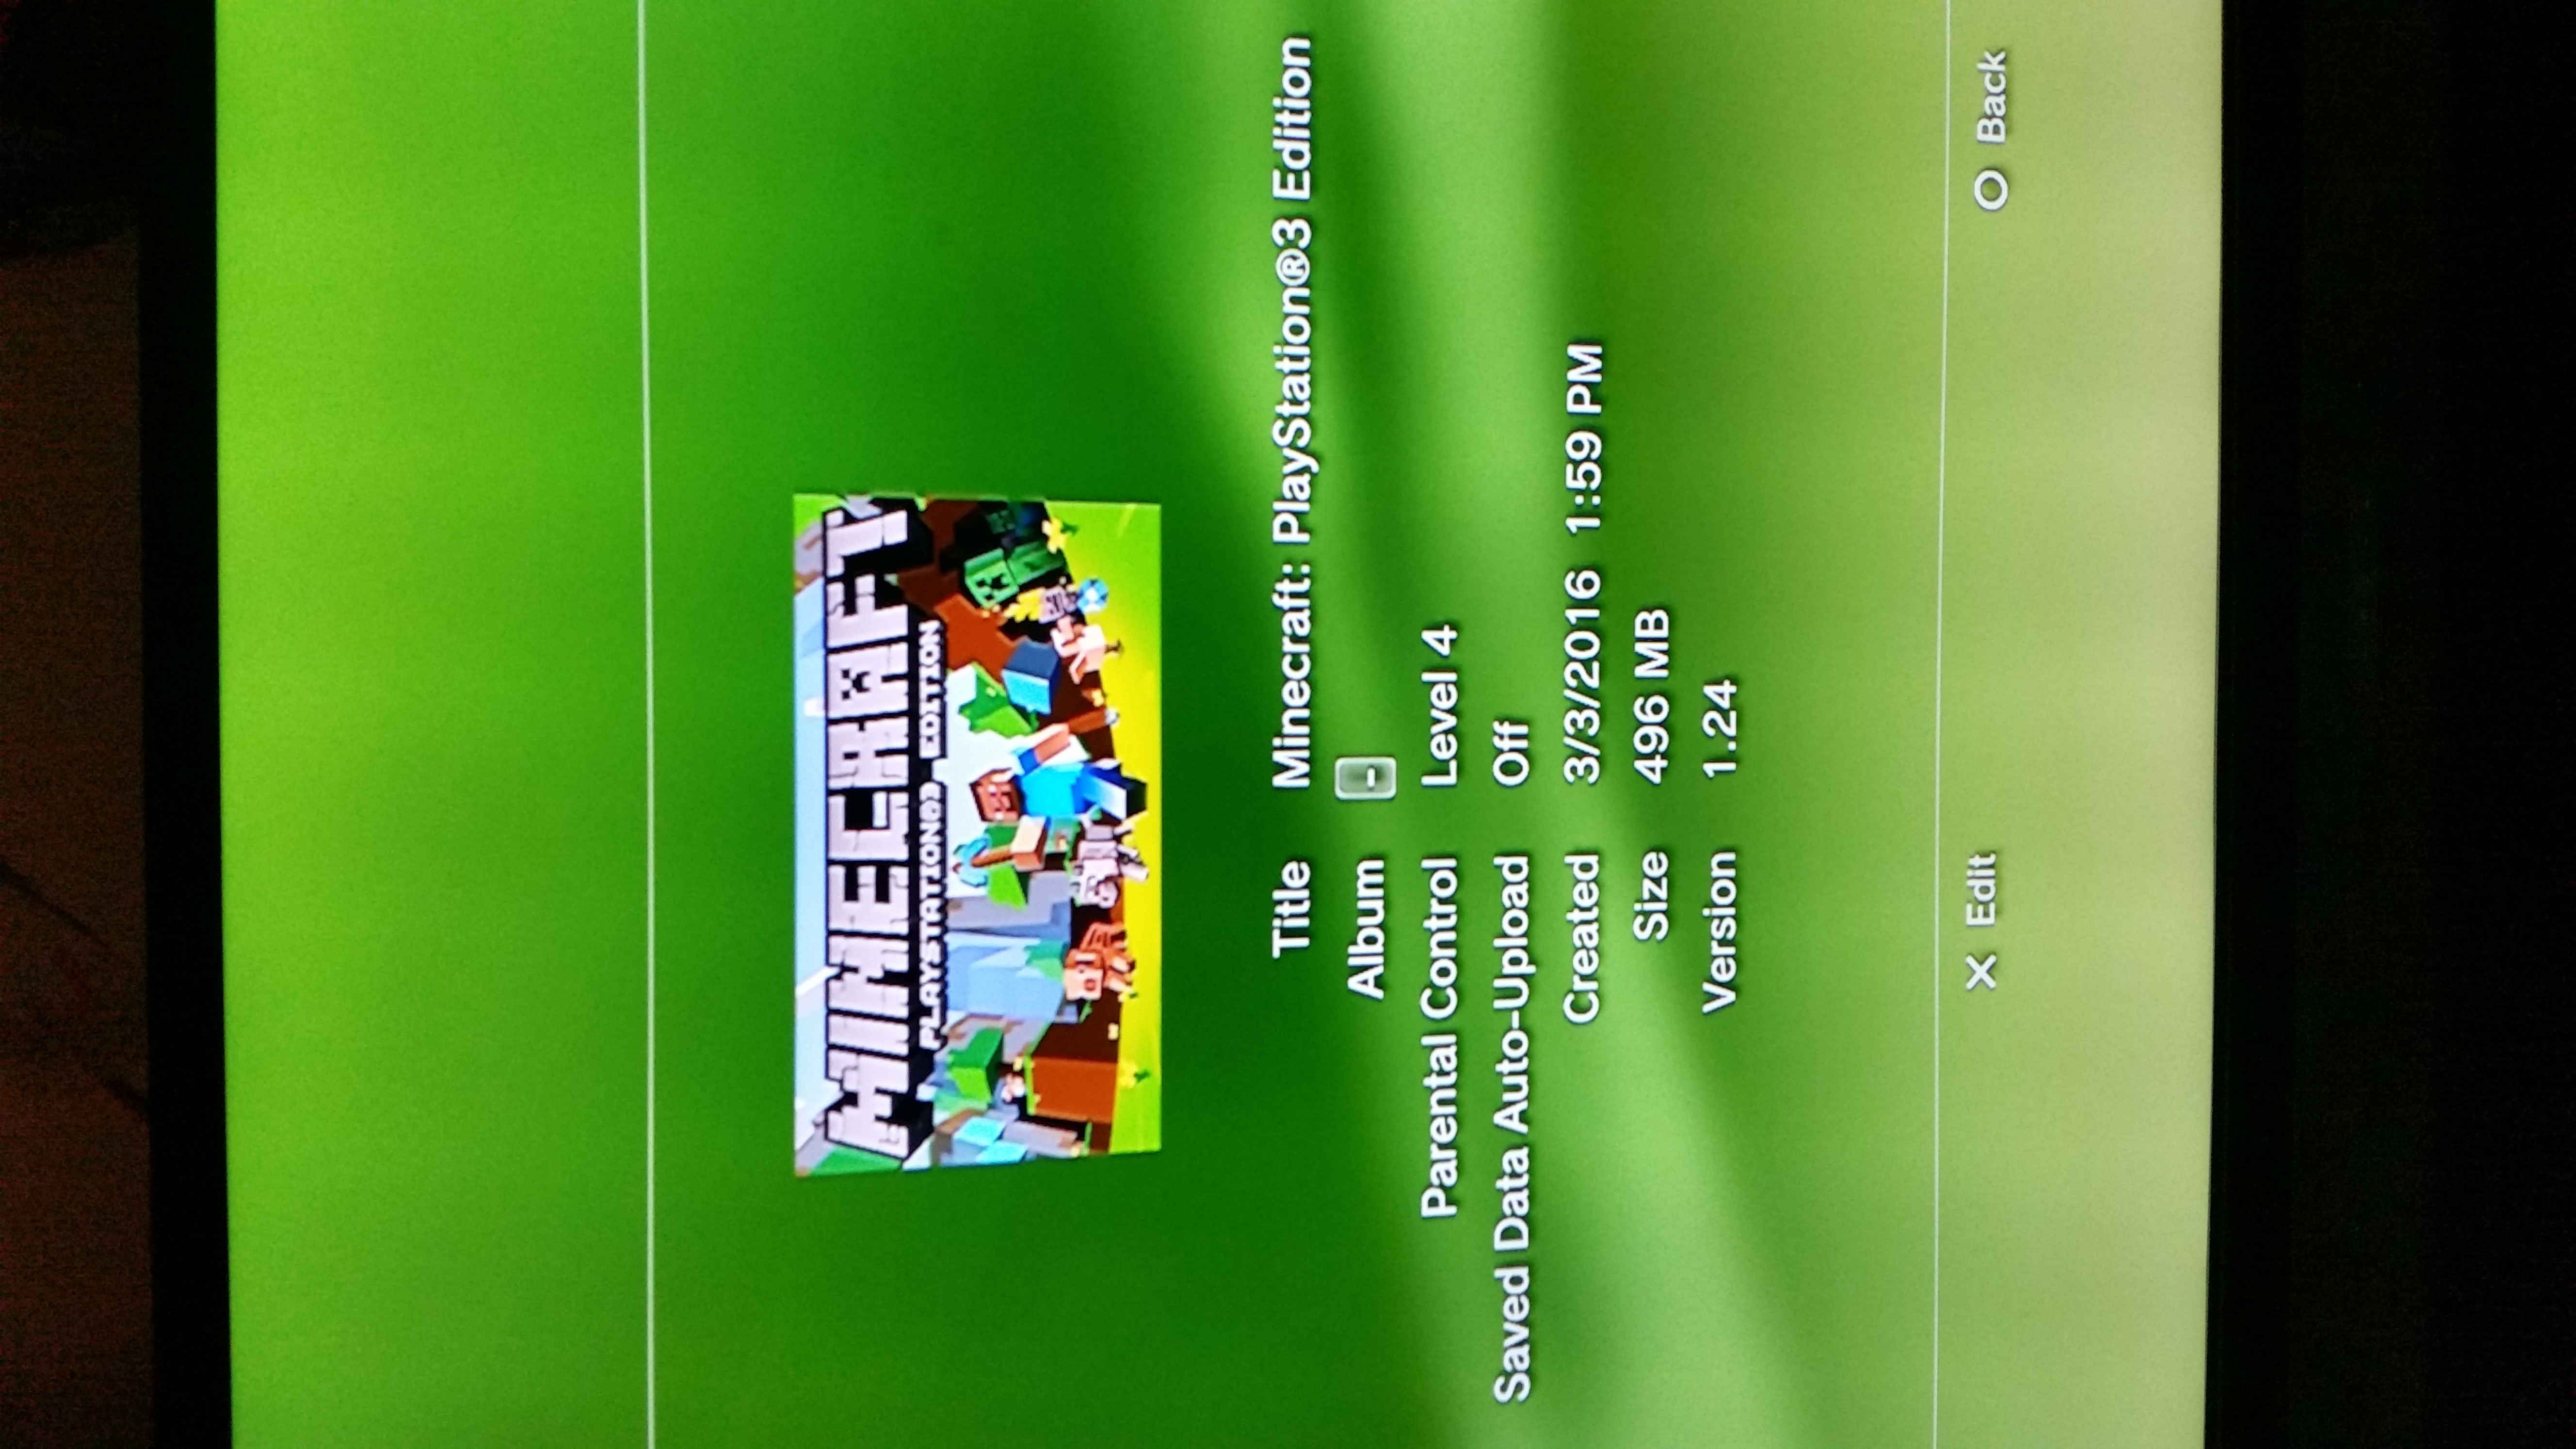 MCCE-441] Minecraft playstation 3 edition has failed to load and